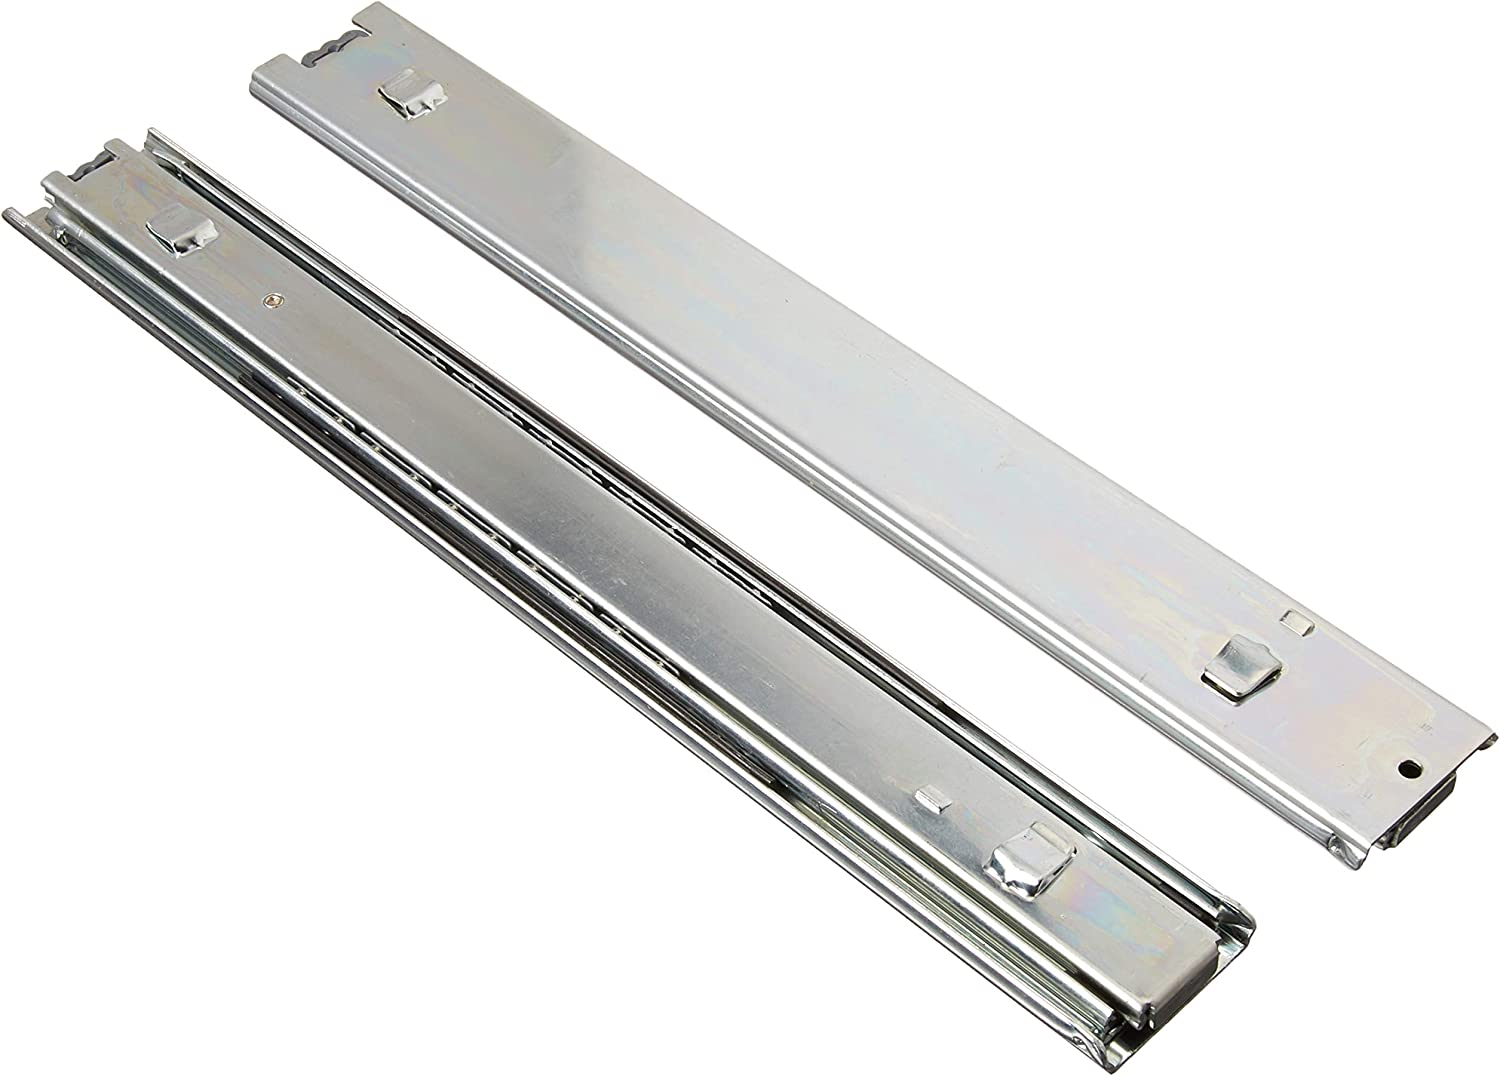 OEMTOOLS 24961F Pair of Drawer Slide